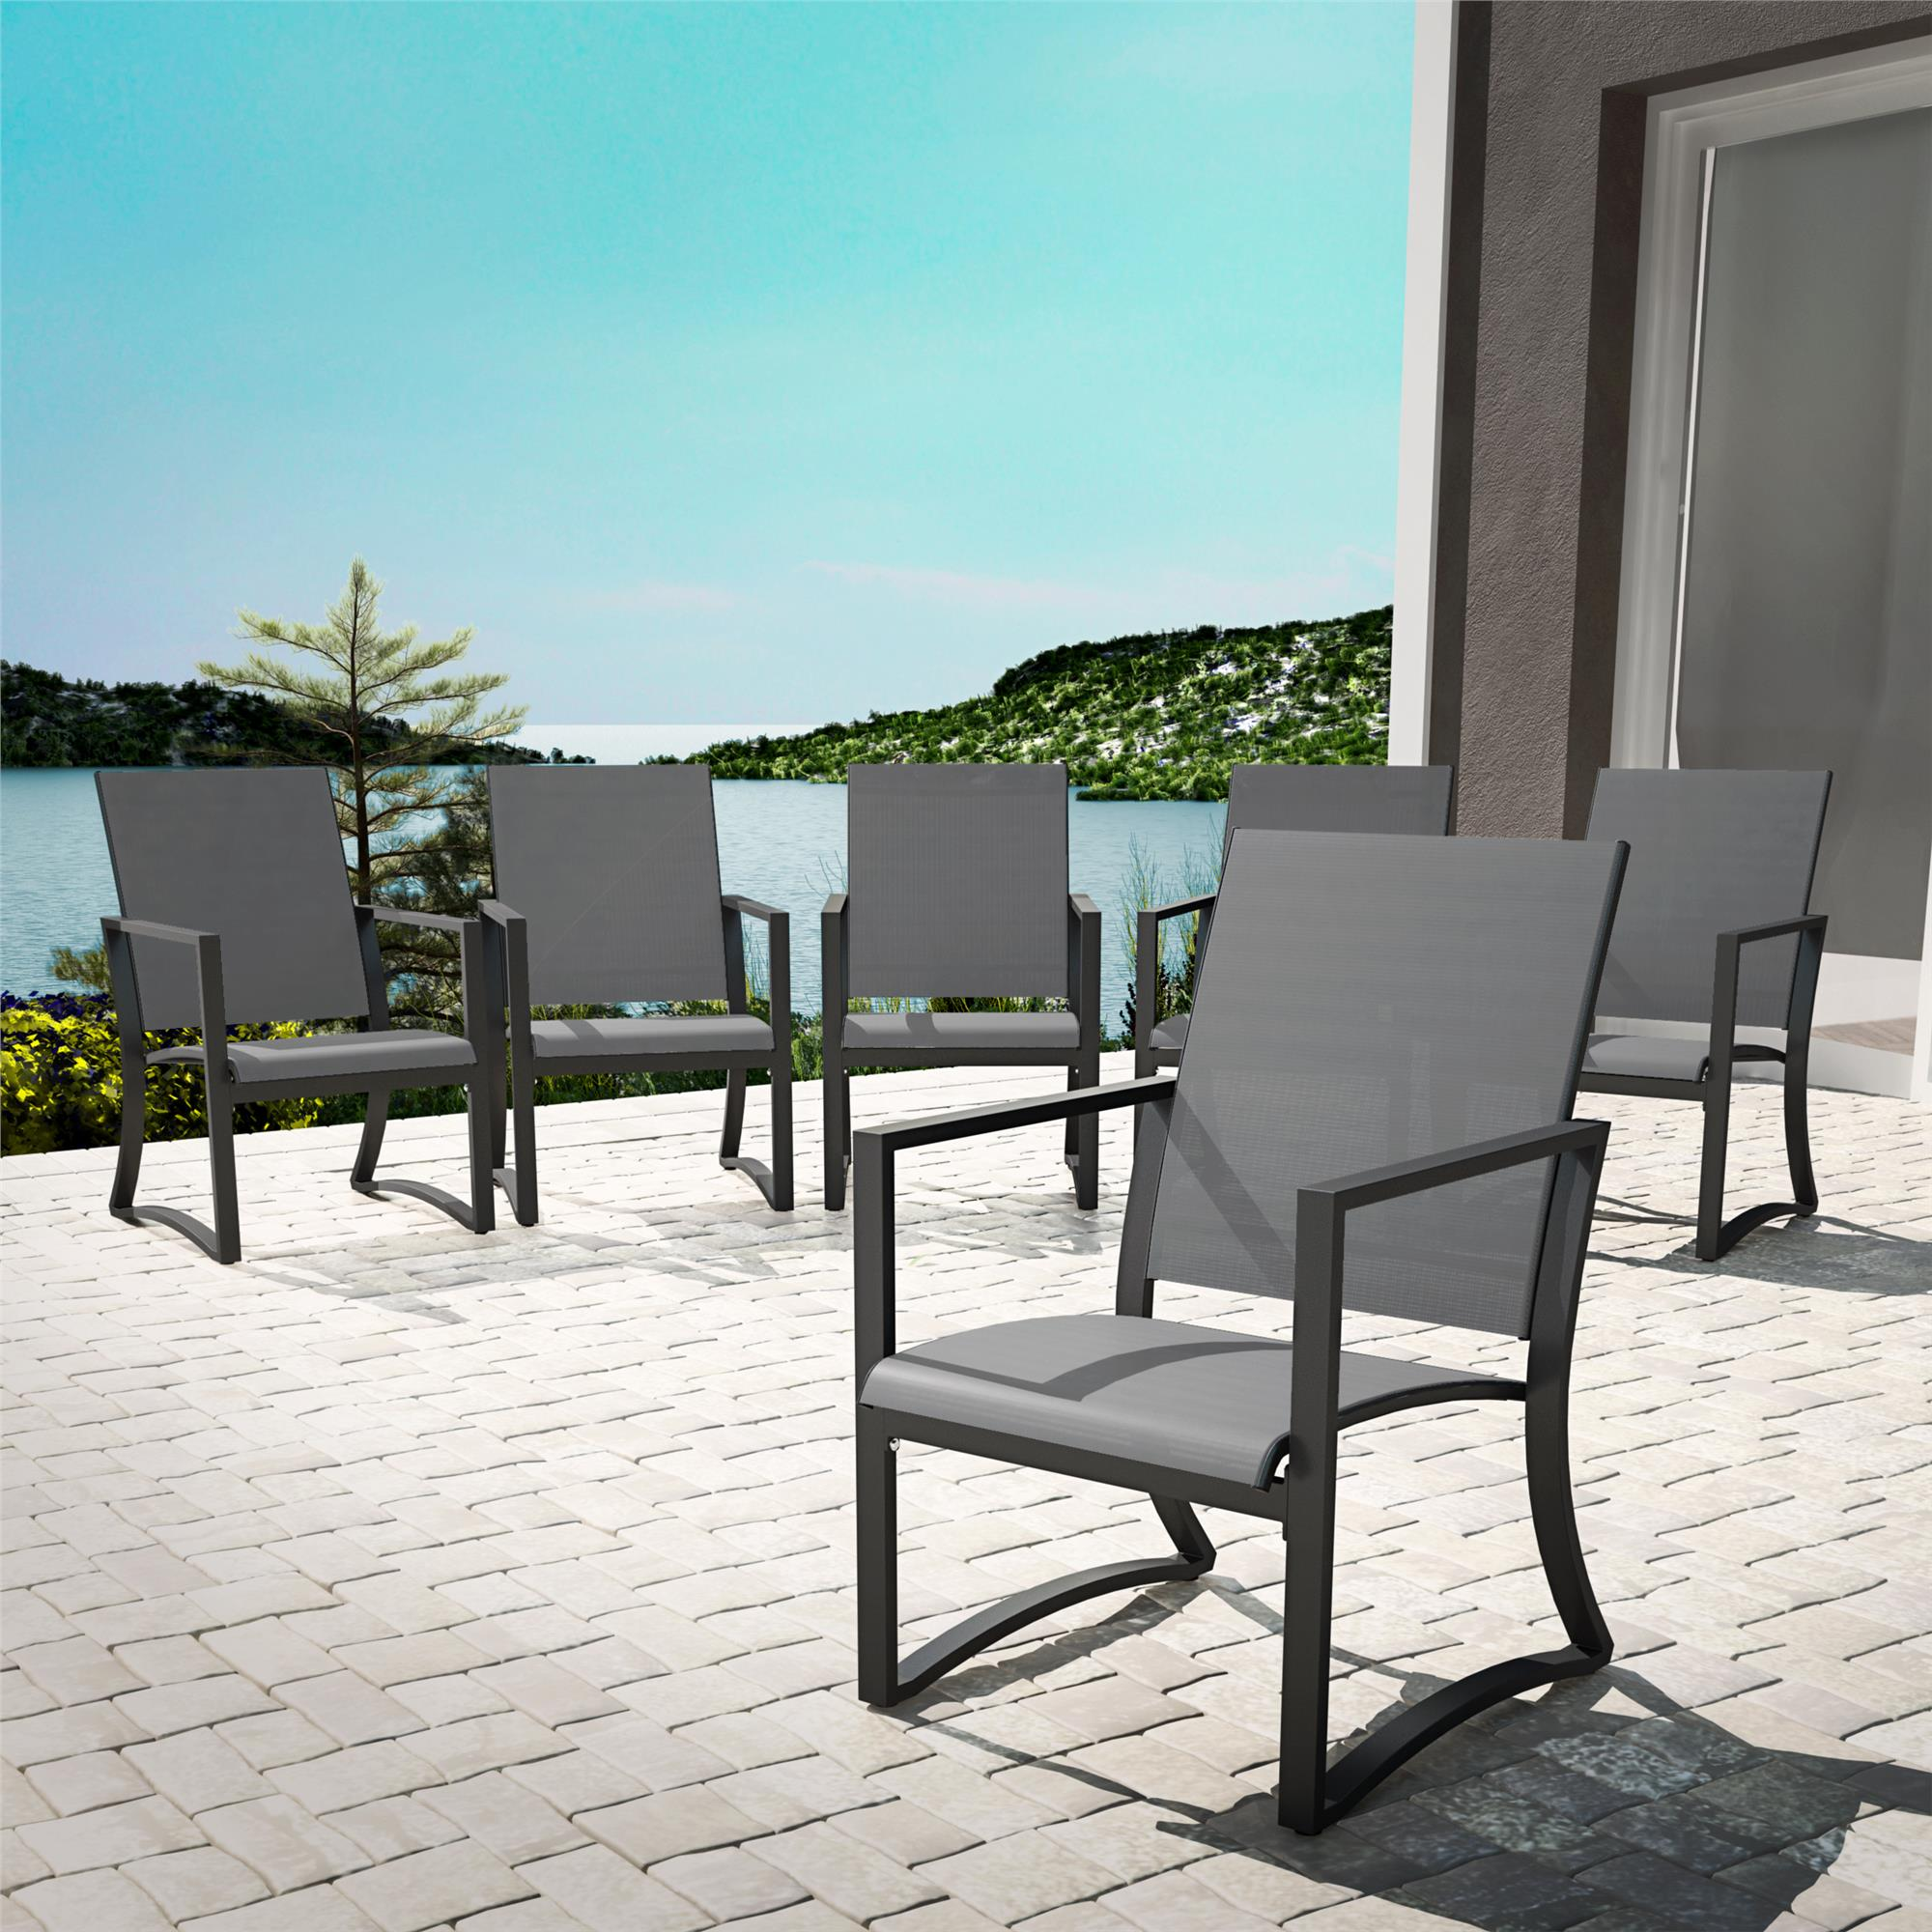 cosco outdoor furniture patio dining chairs 6 pack steel light gray sling walmart com